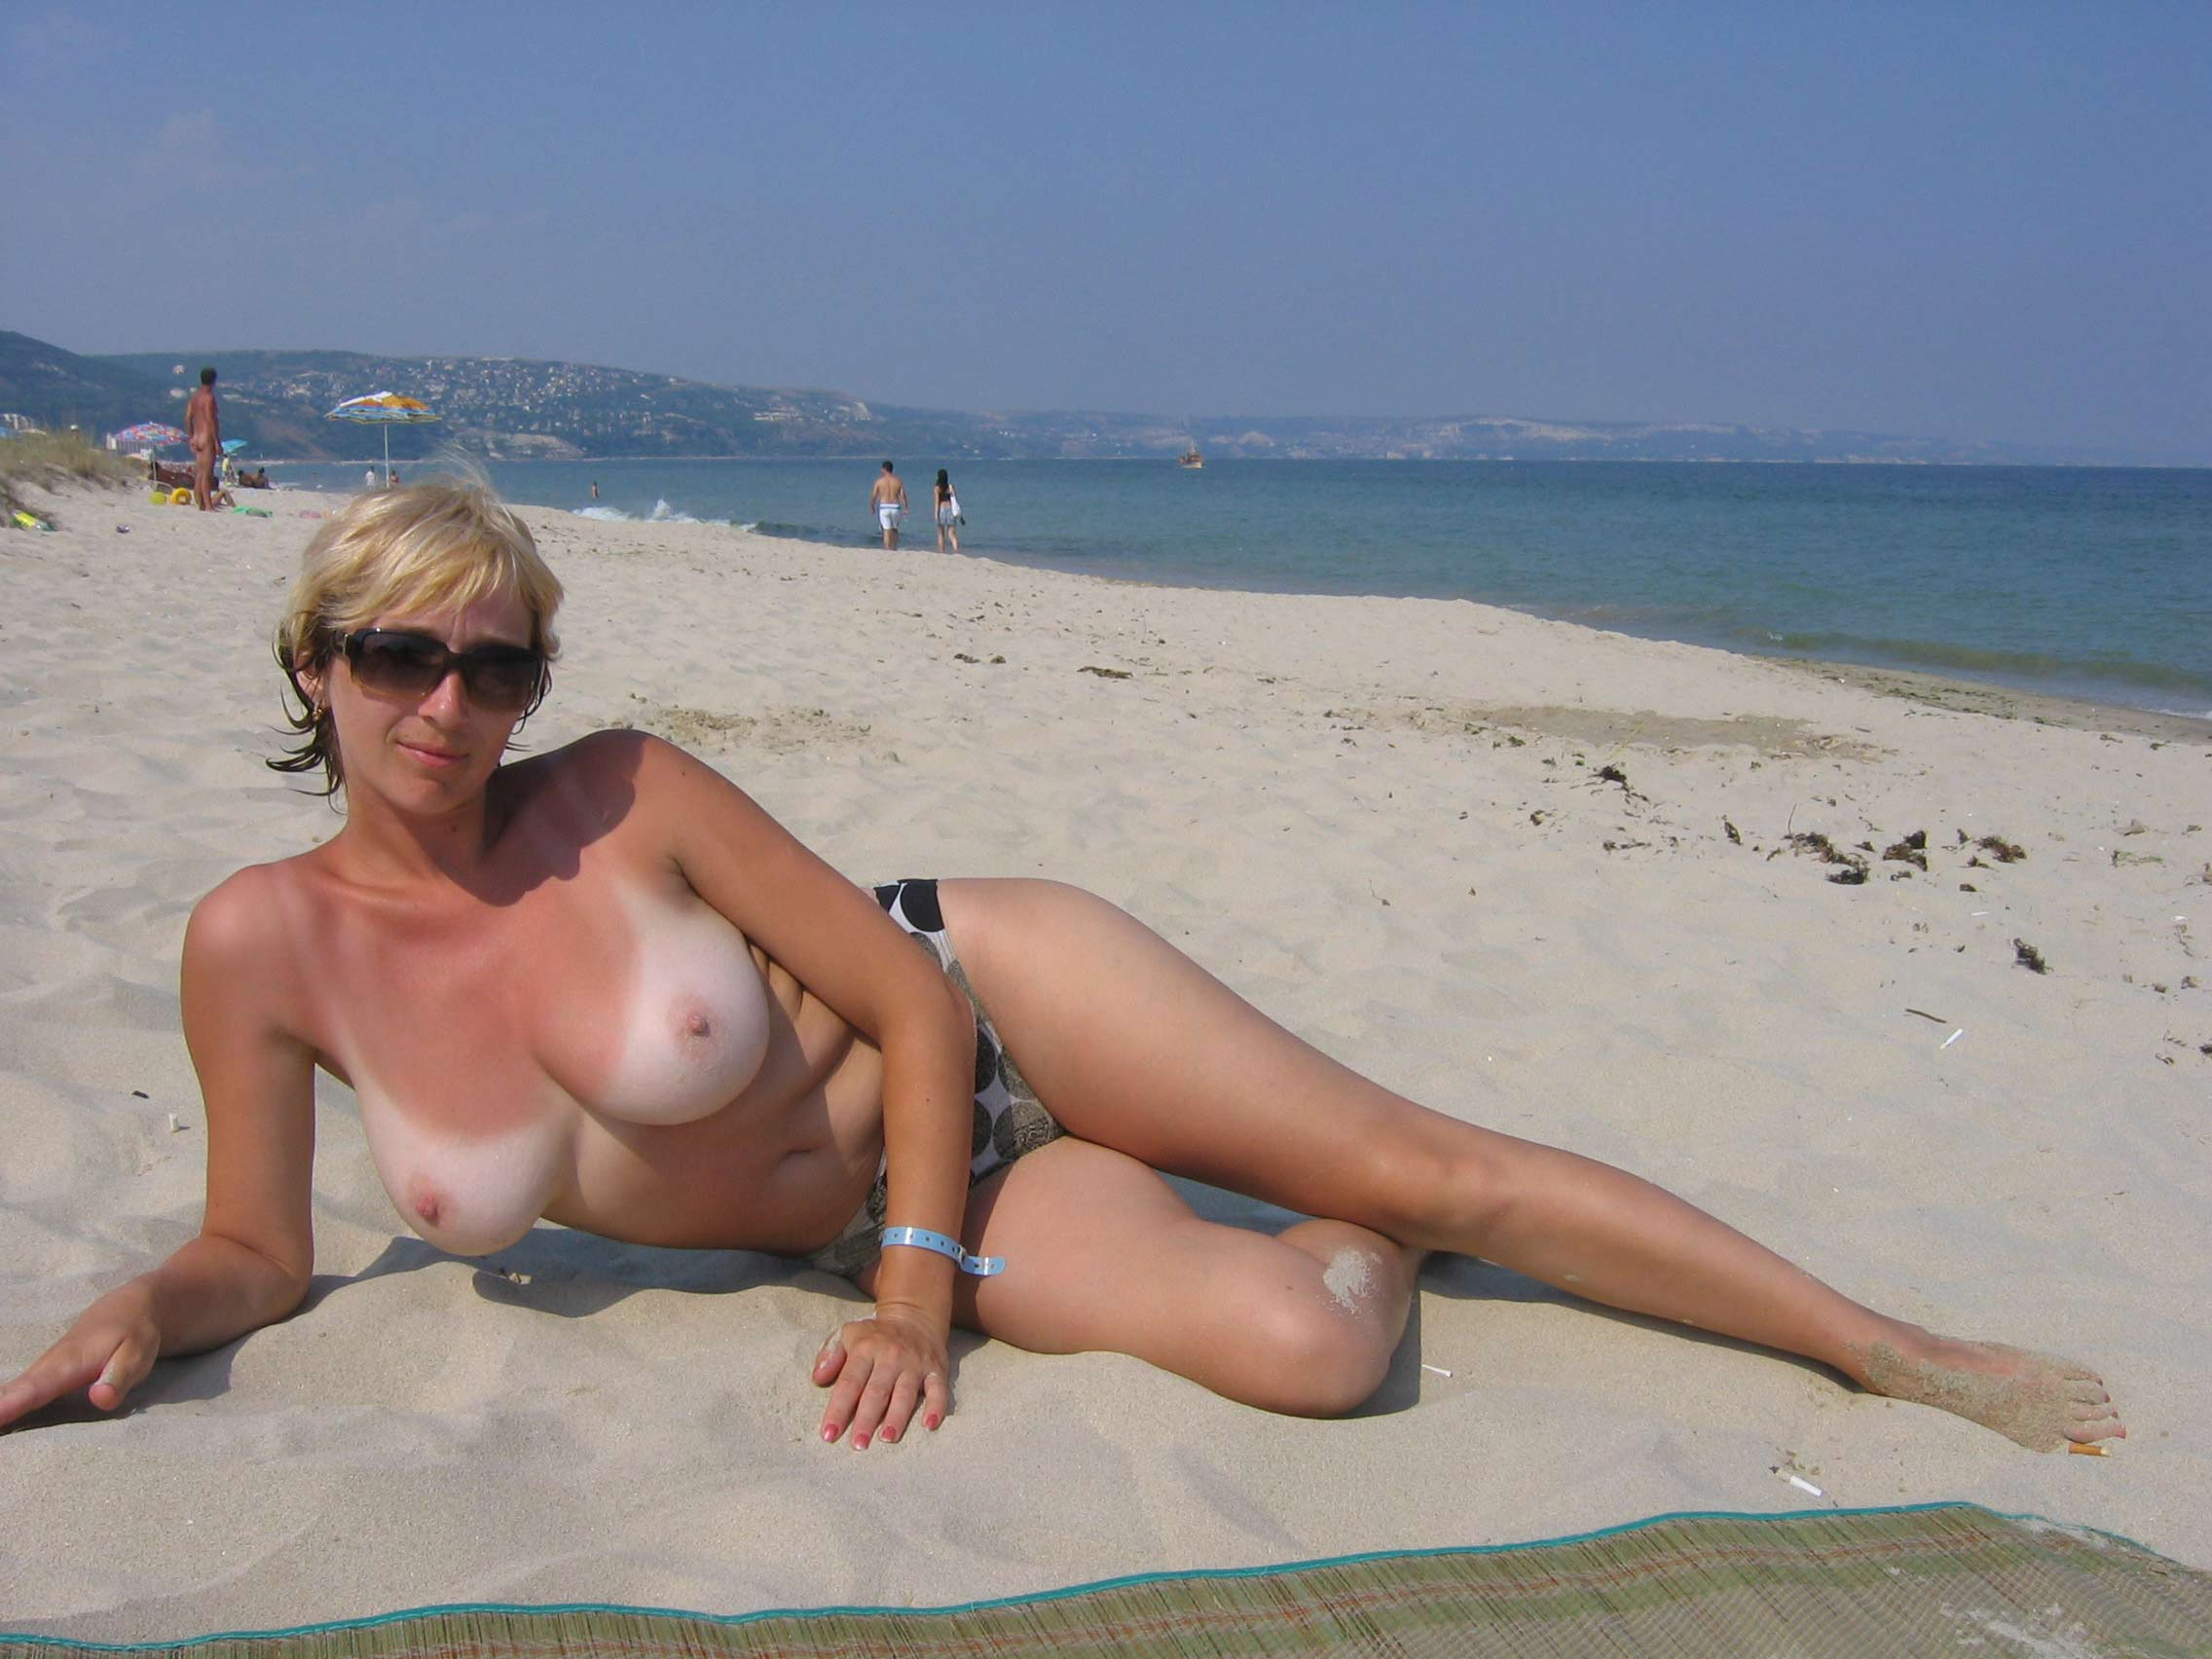 Milf On Beach Pics